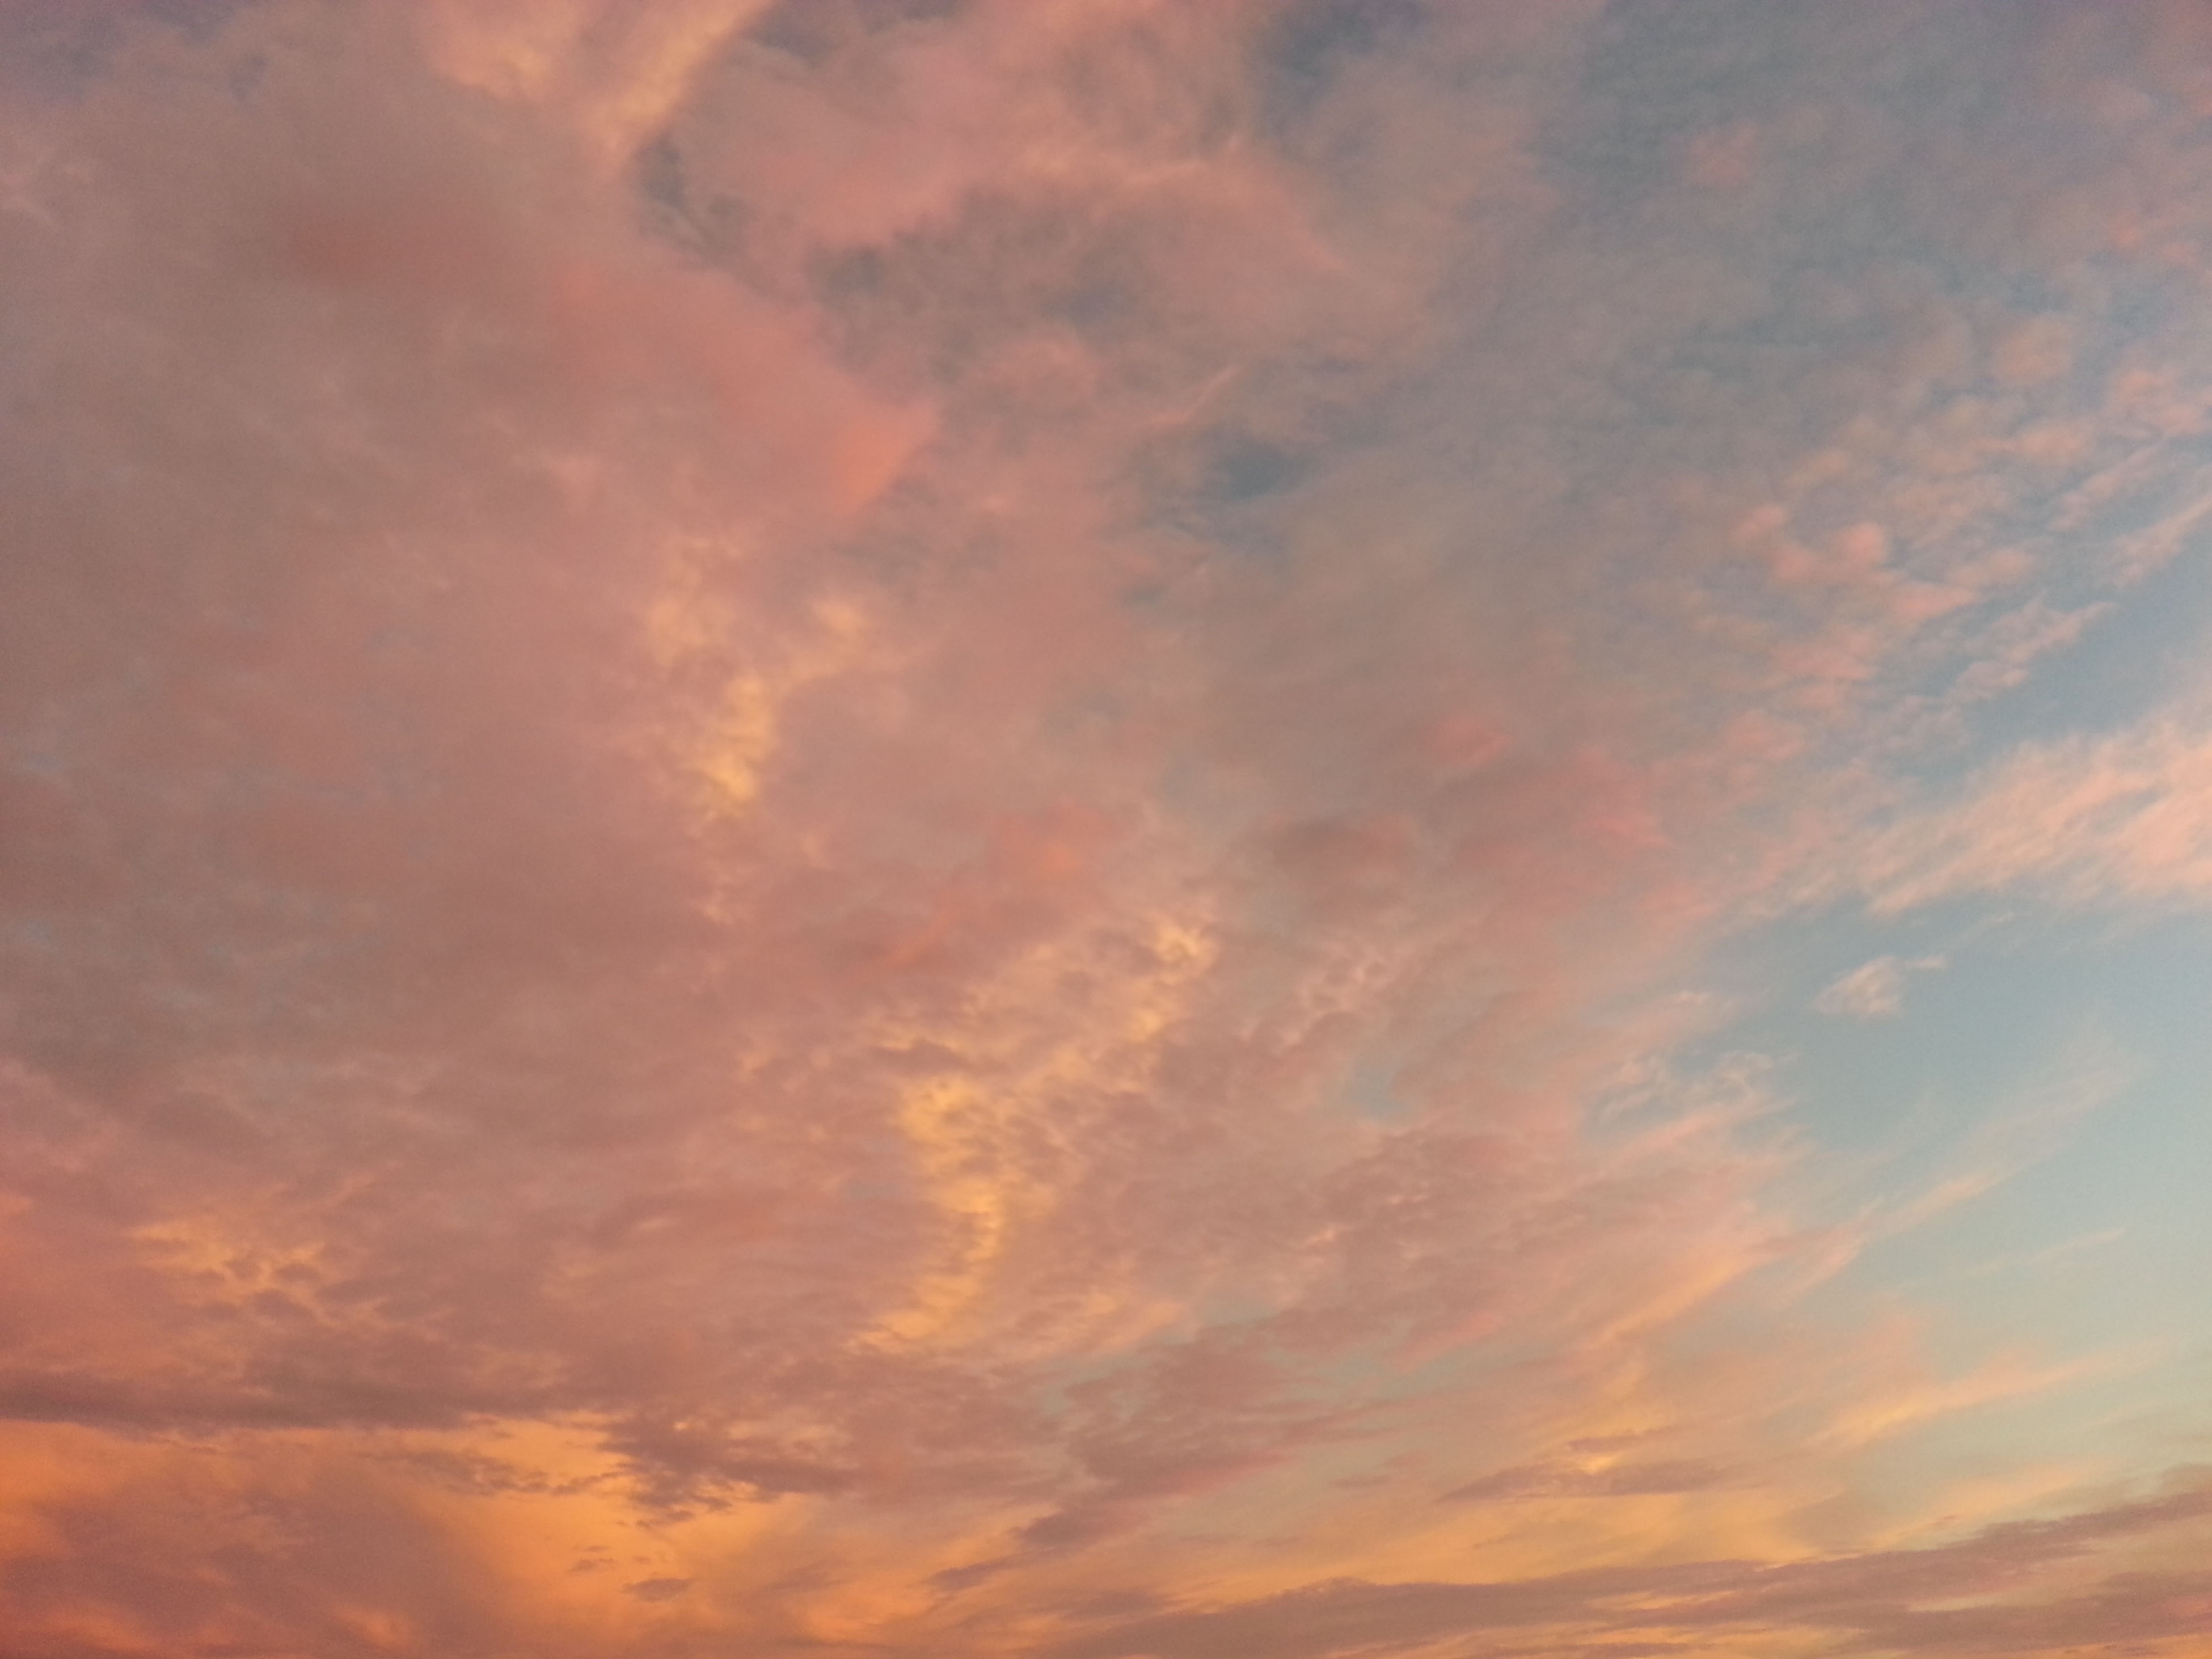 sky, sunset, cloud - sky, low angle view, beauty in nature, tranquility, scenics, orange color, cloudy, tranquil scene, backgrounds, nature, sky only, idyllic, full frame, cloudscape, cloud, dramatic sky, outdoors, no people